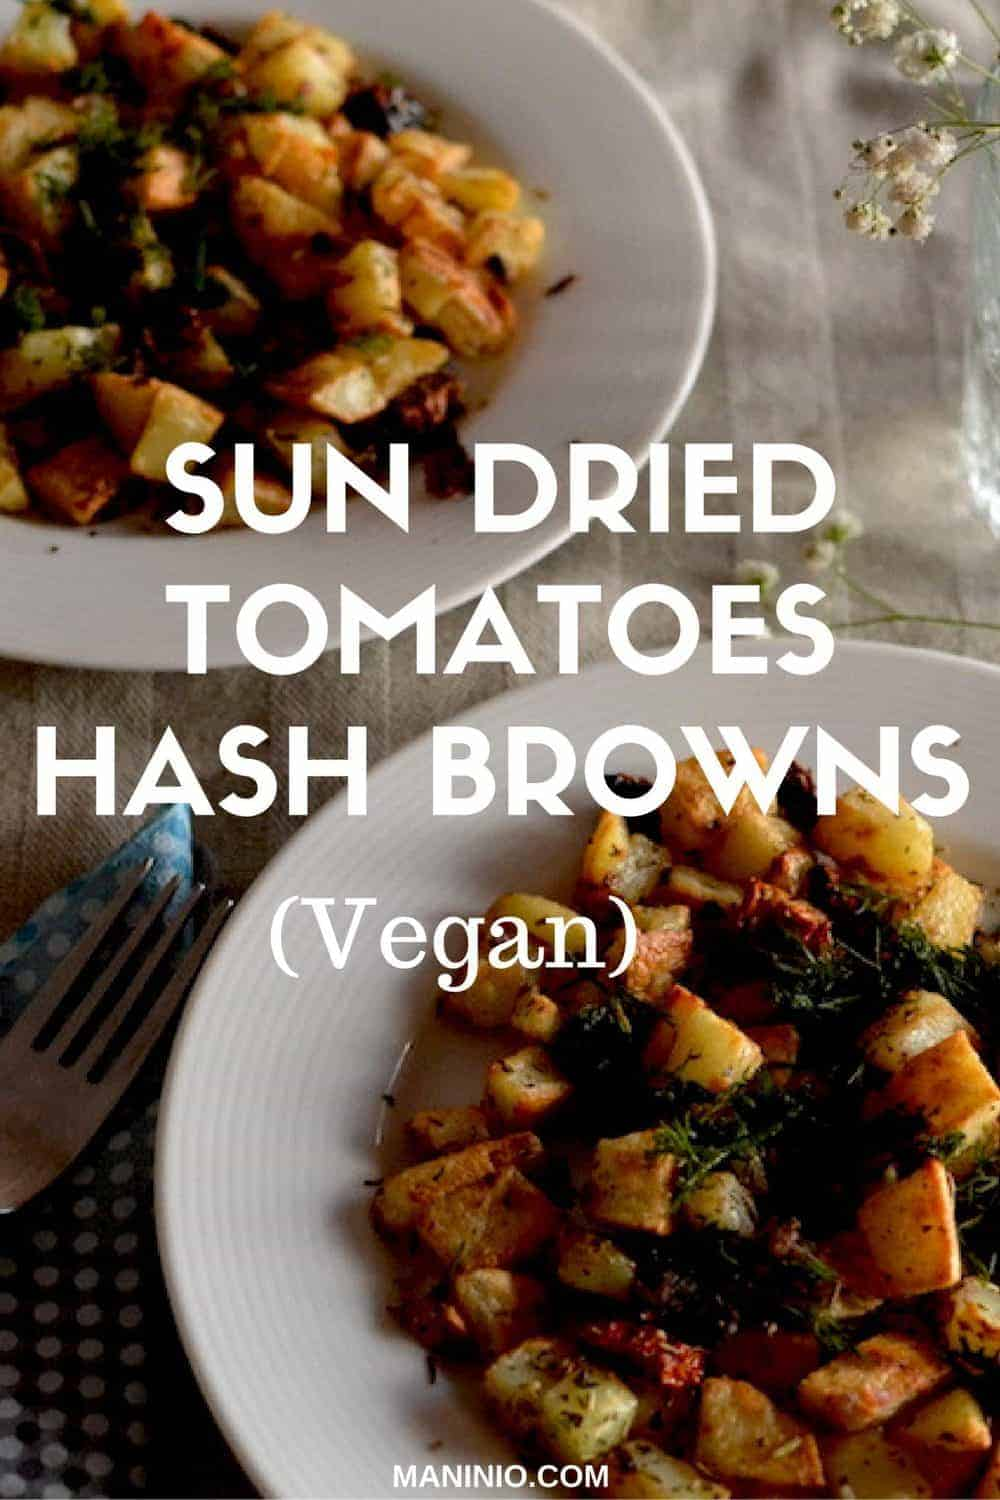 Hash Browns with Sun dried tomatoes, Vegan